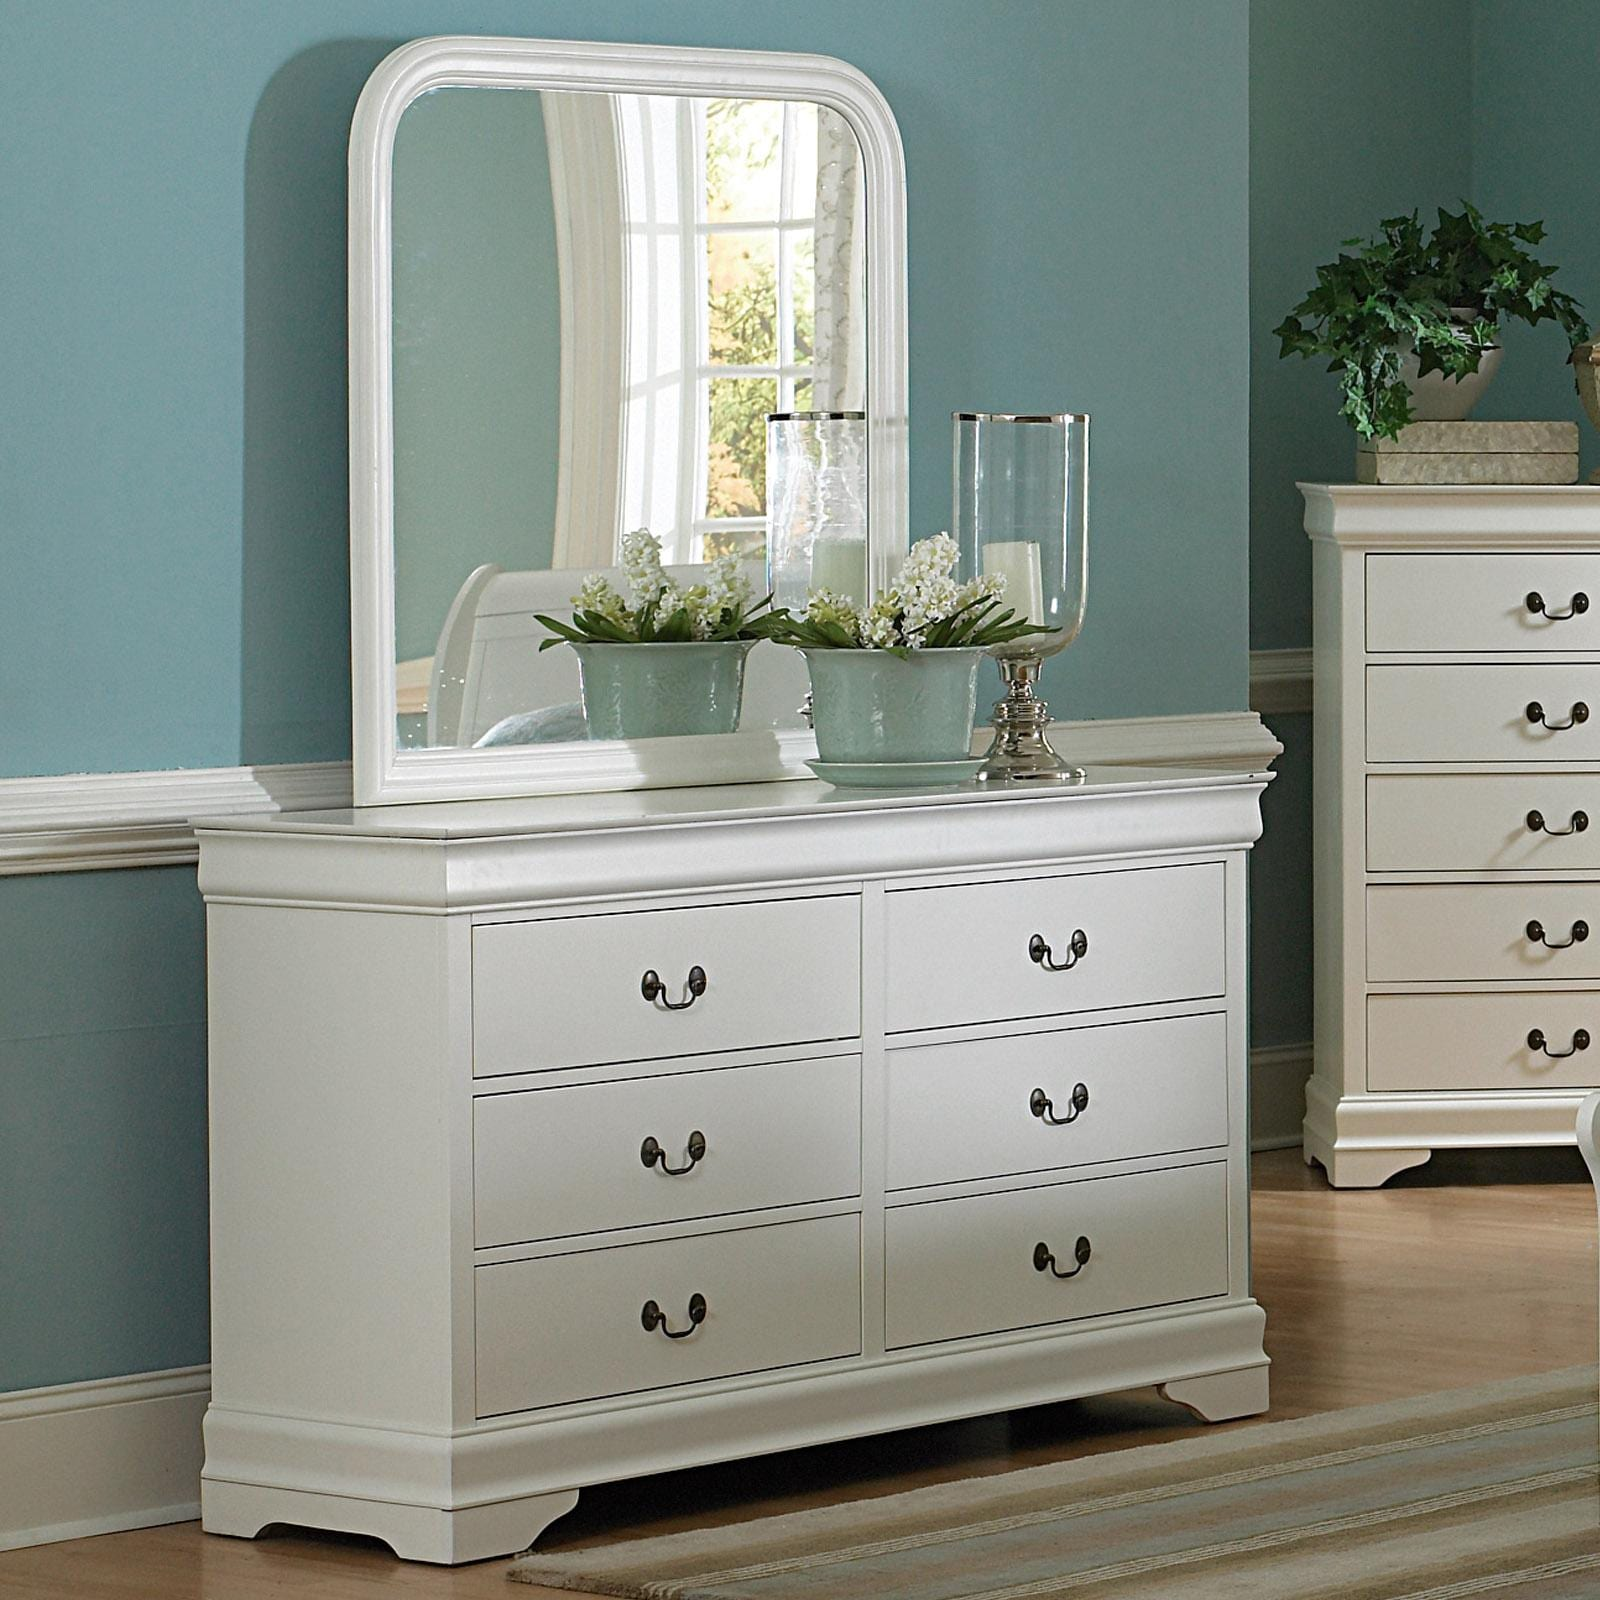 alfie white 6 drawer dresser with mirror free shipping today 13497315. Black Bedroom Furniture Sets. Home Design Ideas